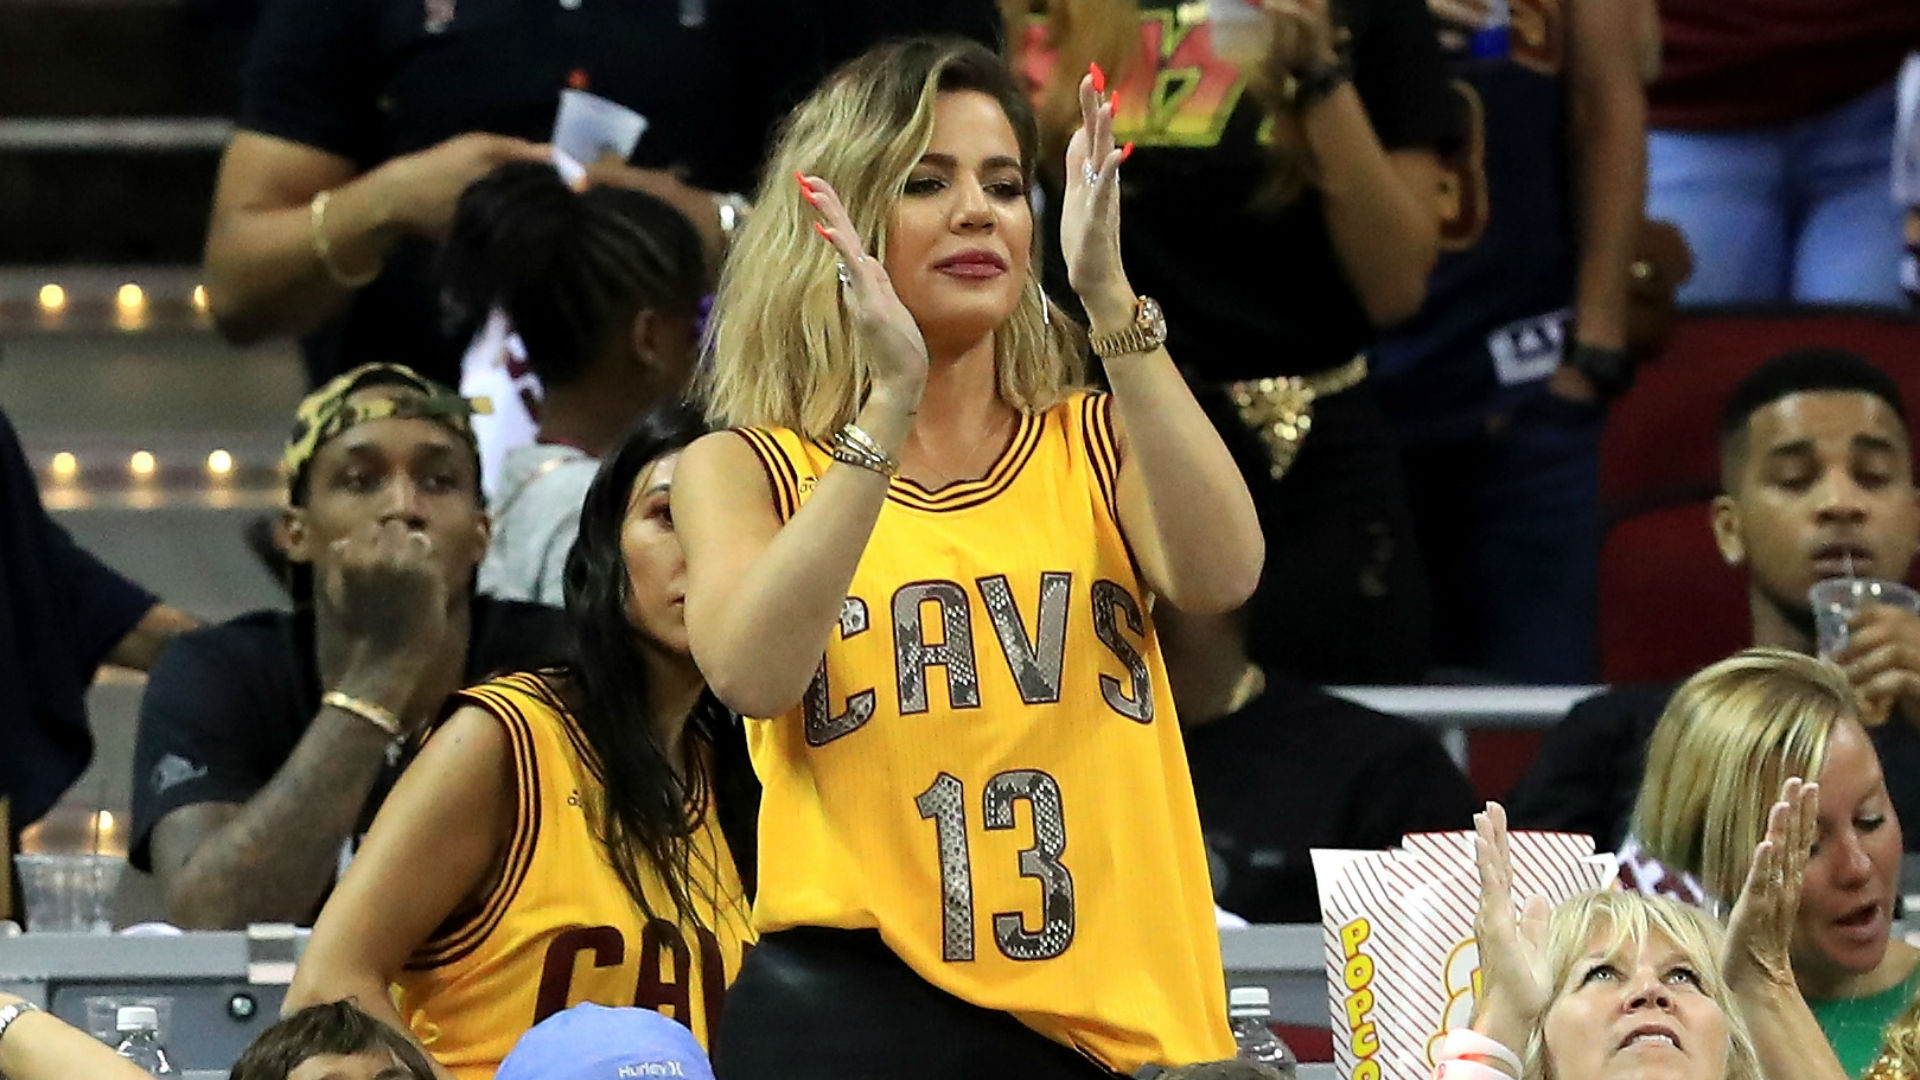 Khloe 'Wants to Get the Hell Out of Cleveland' Amid Thompson Cheating Scandal